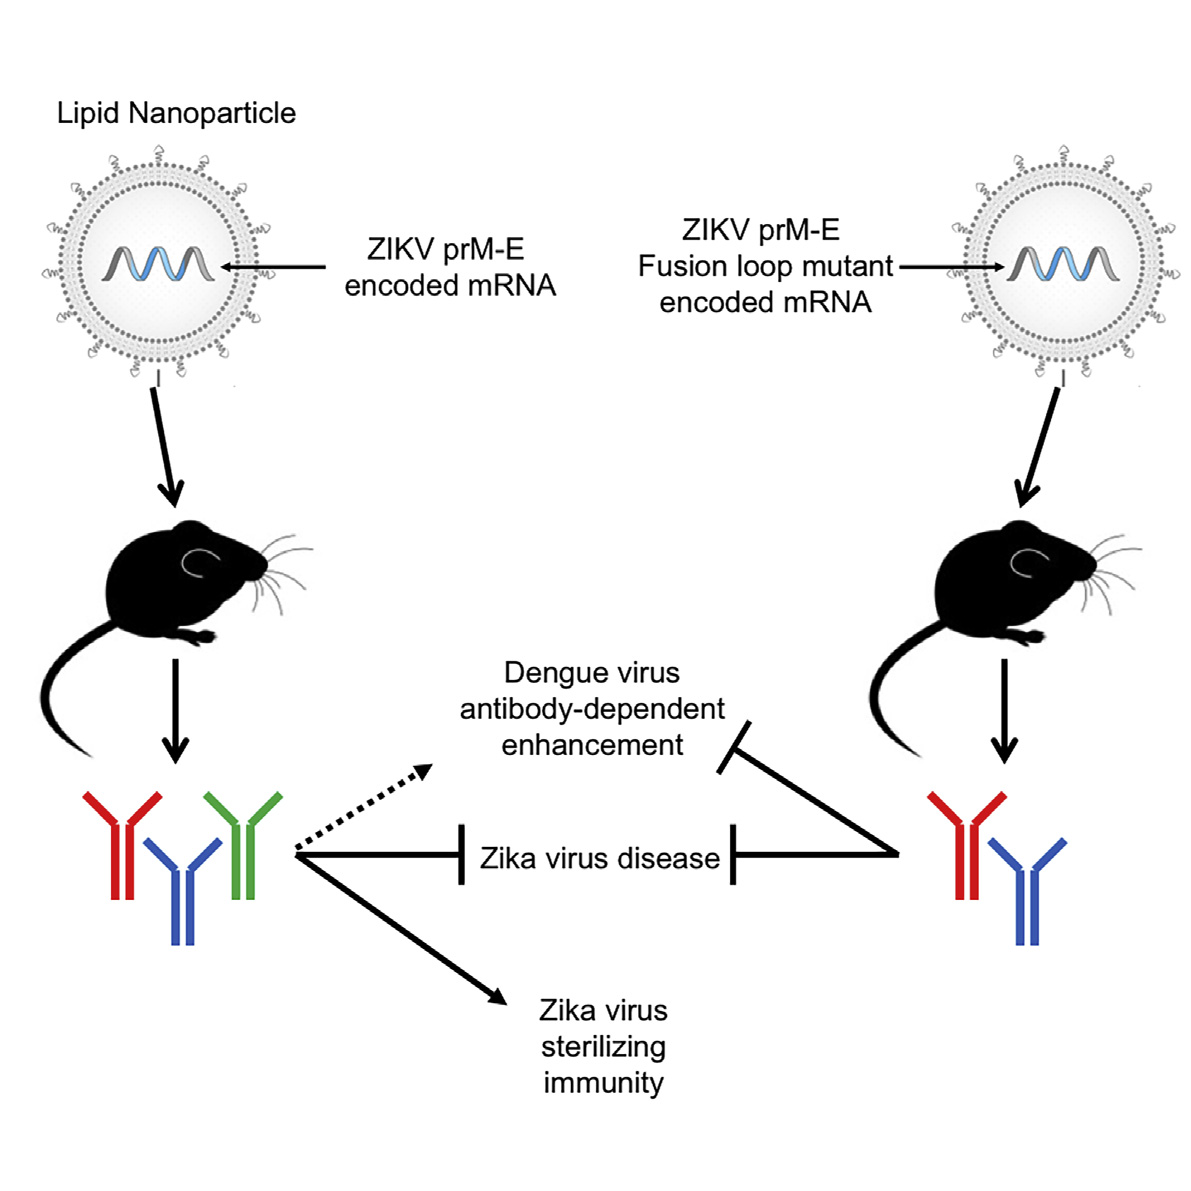 more evidence that zika mrna vaccines can stop viral